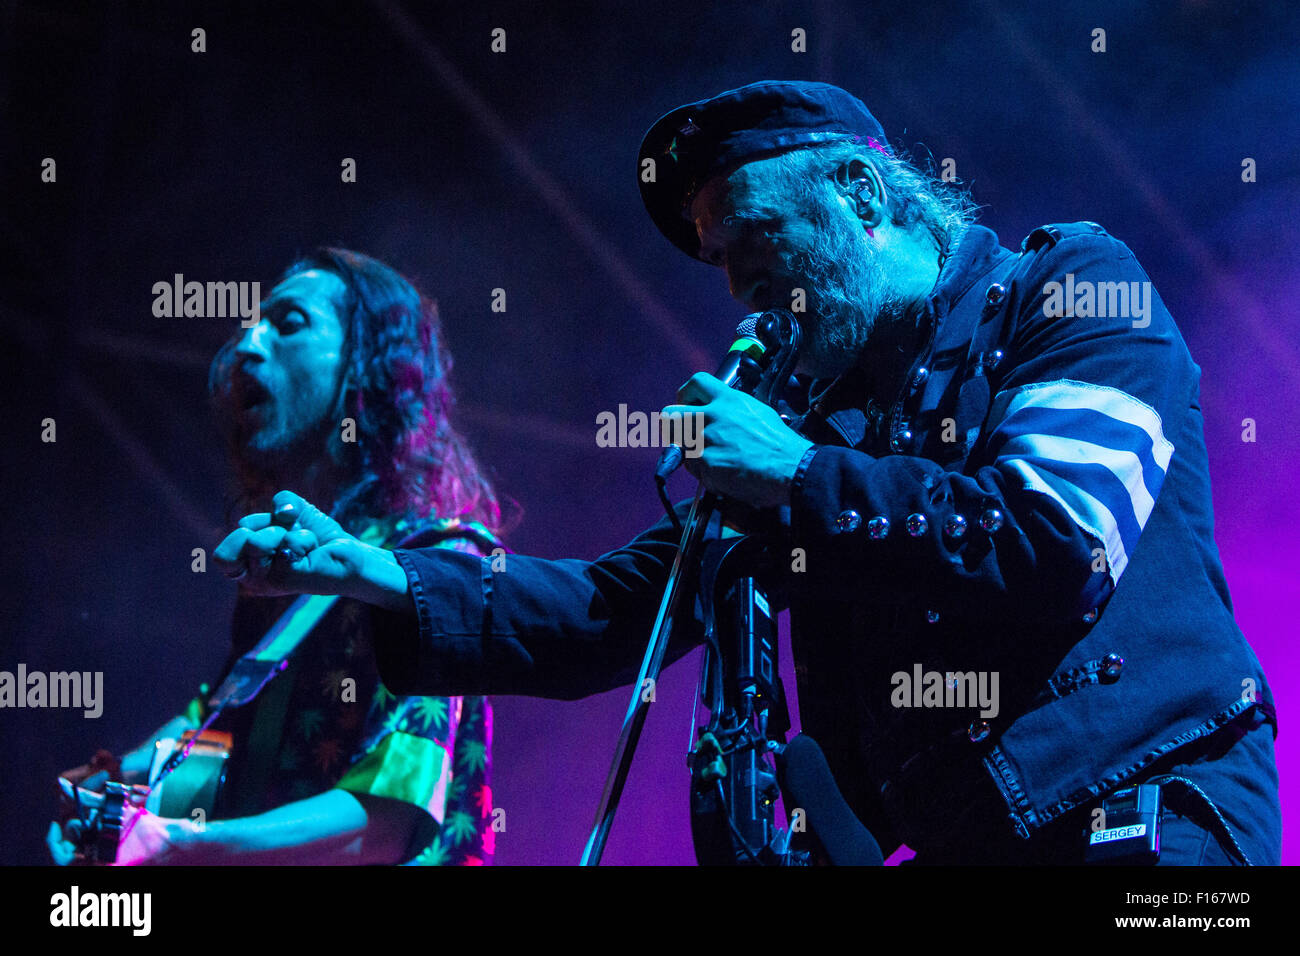 Milan Italy. 27th August 2015. The American gypsy-punk band GOGOL BORDELLO performs live at Mercati Generali during - Stock Image